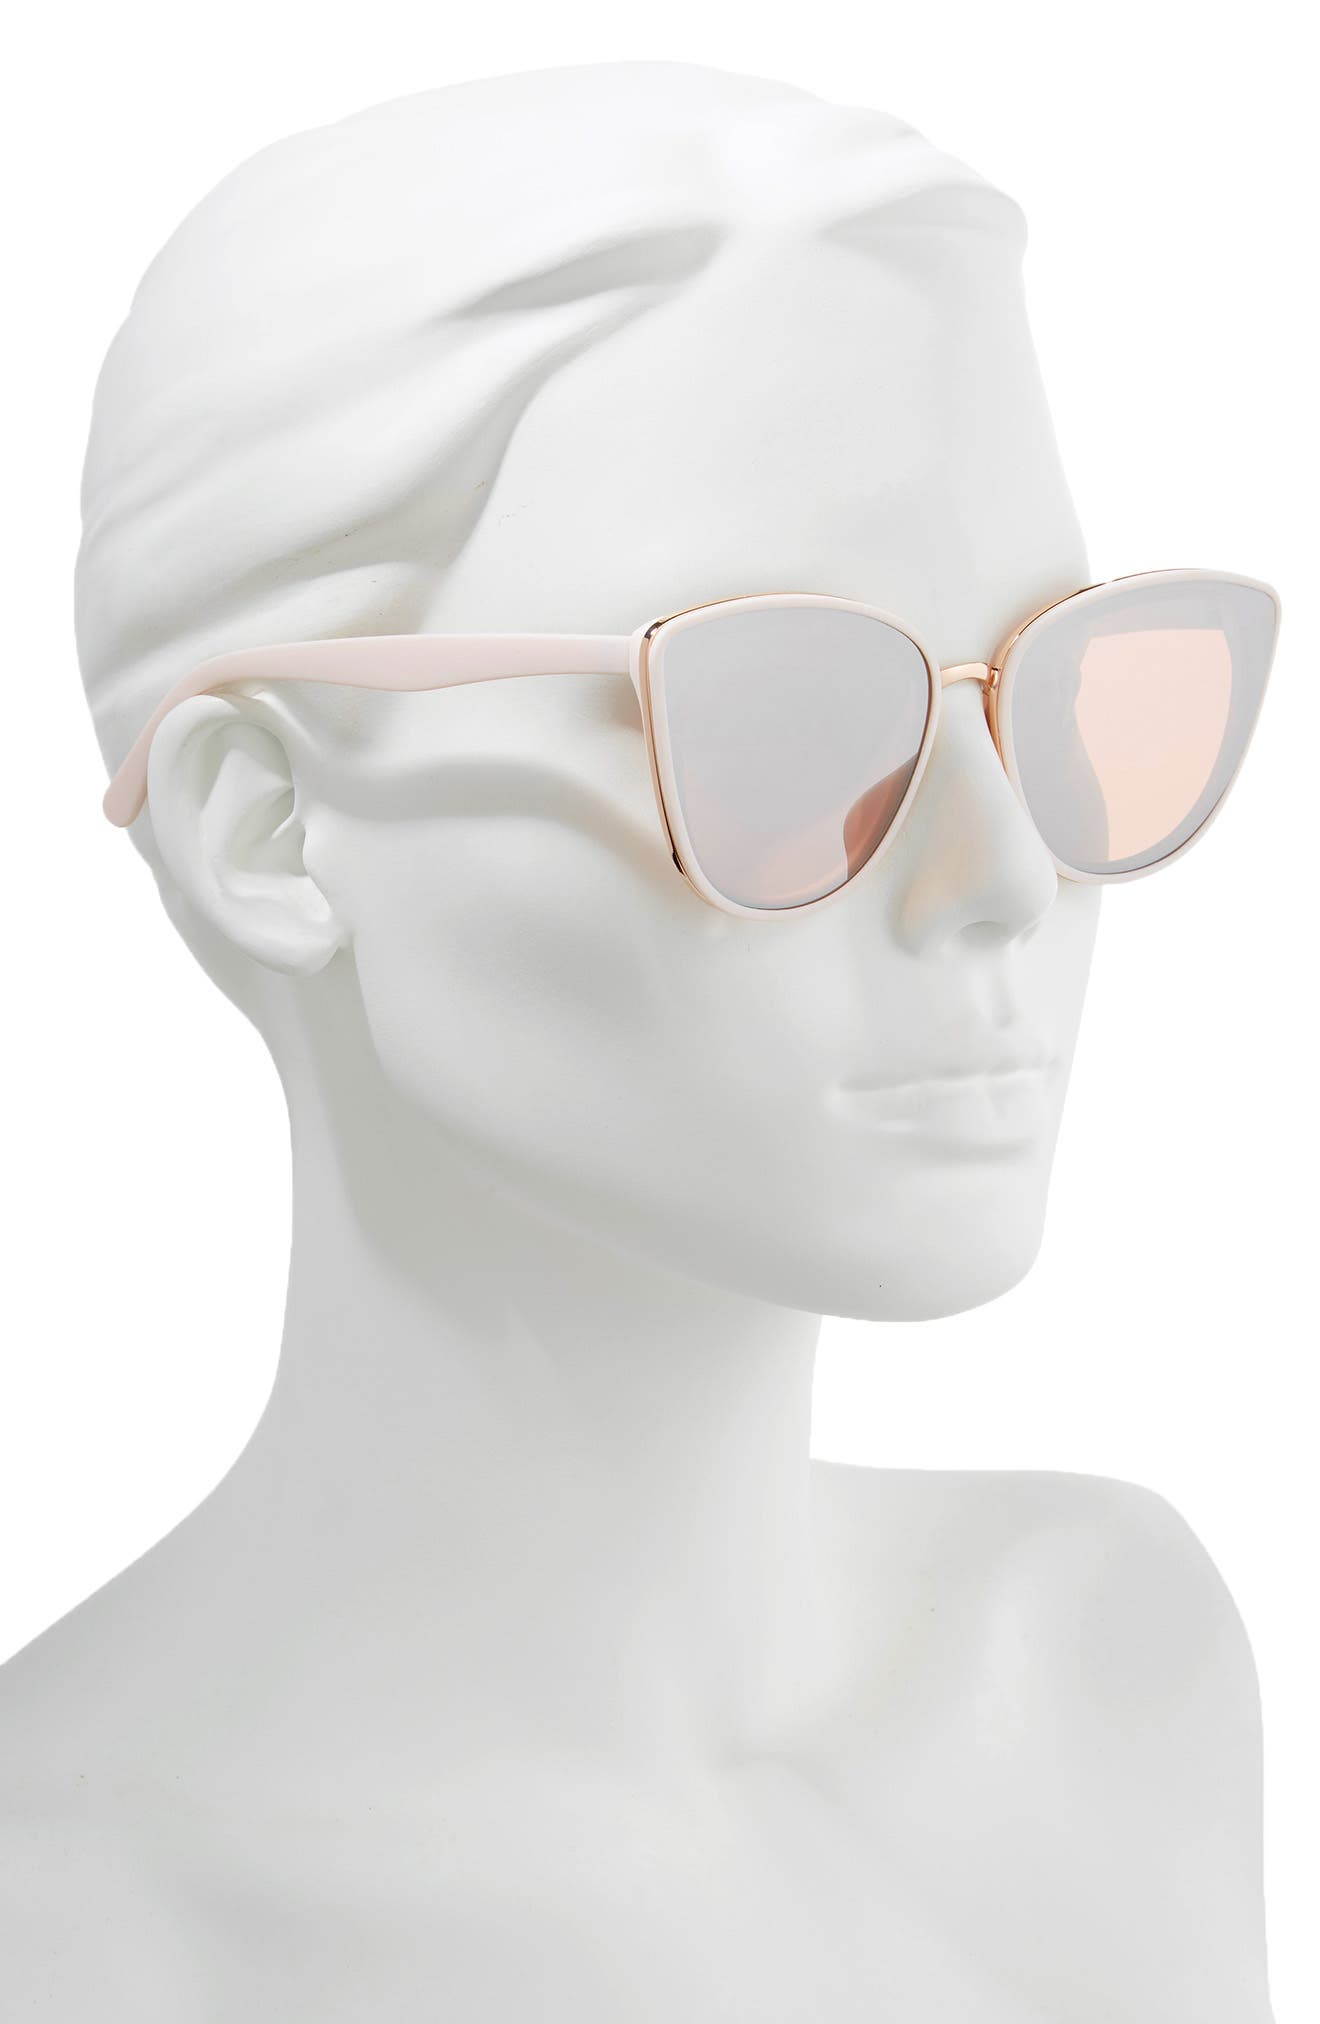 59mm Perfect Cat Eye Sunglasses,                             Alternate thumbnail 2, color,                             PINK